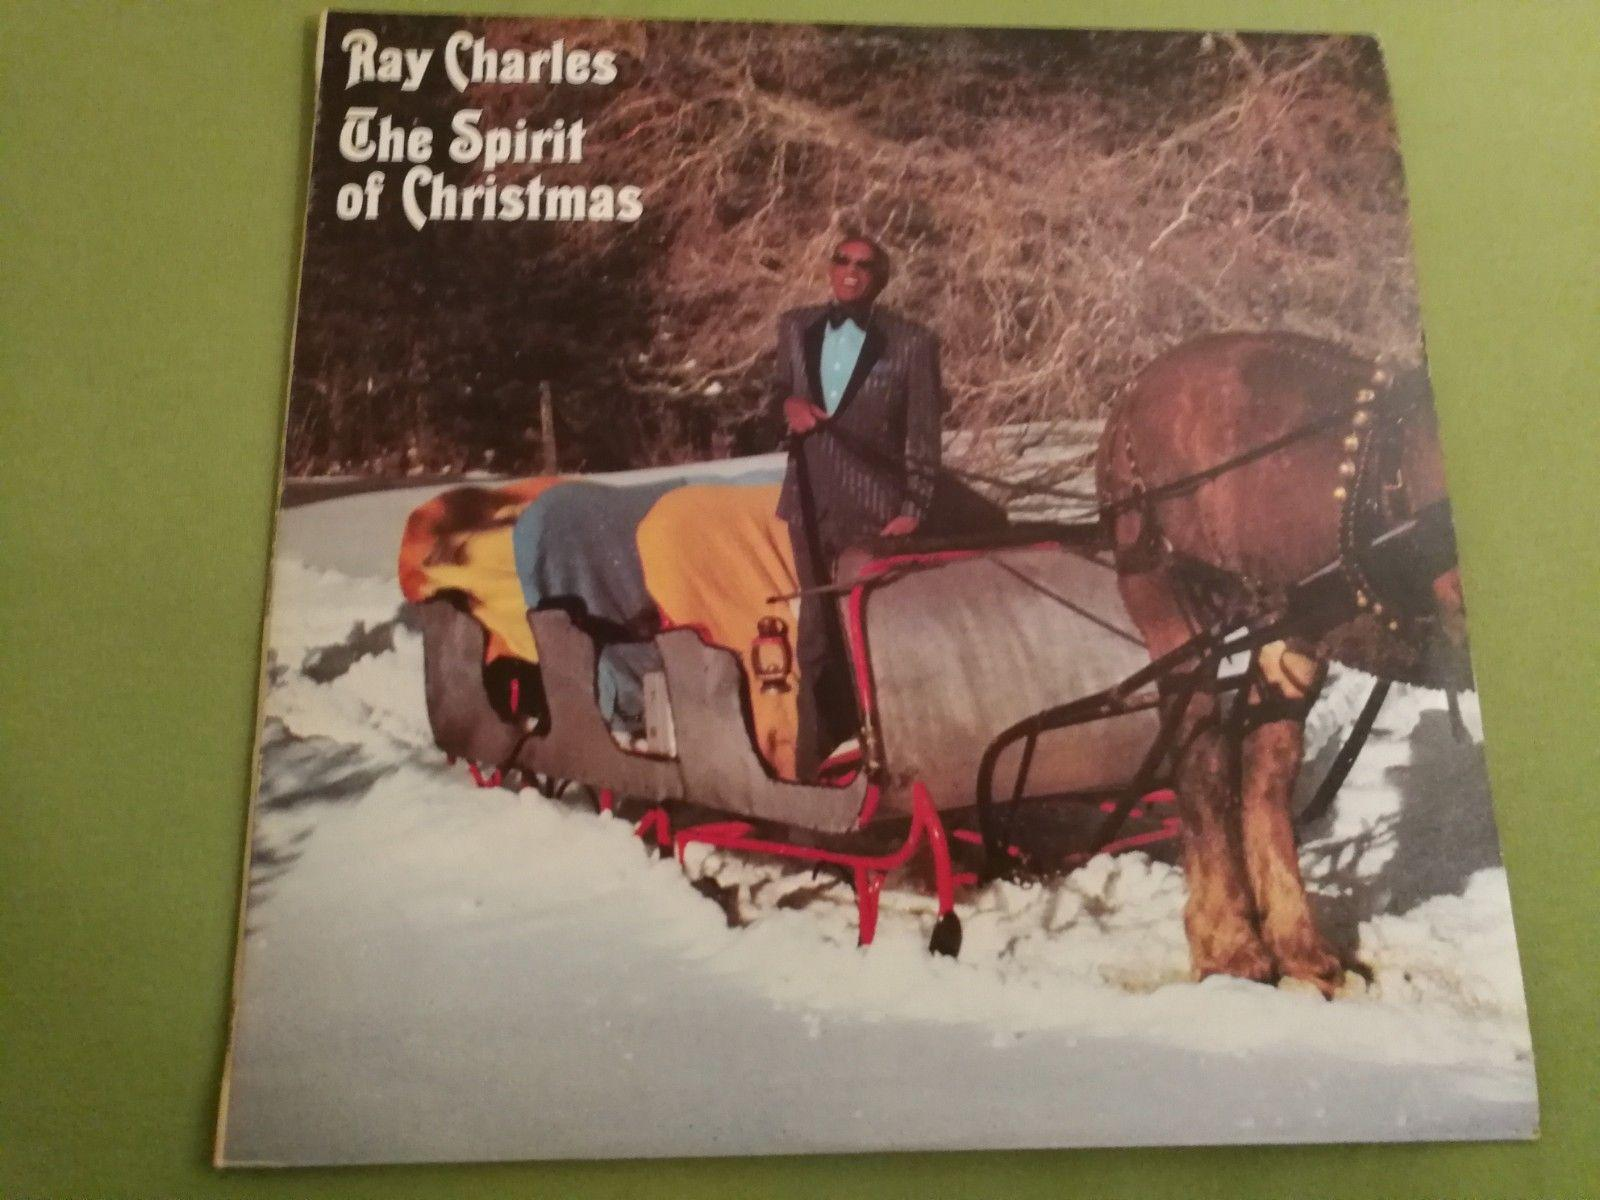 RAY CHARLES - The Spirit Of Christmas - MINT LP / COVER NM - RARE VINYL